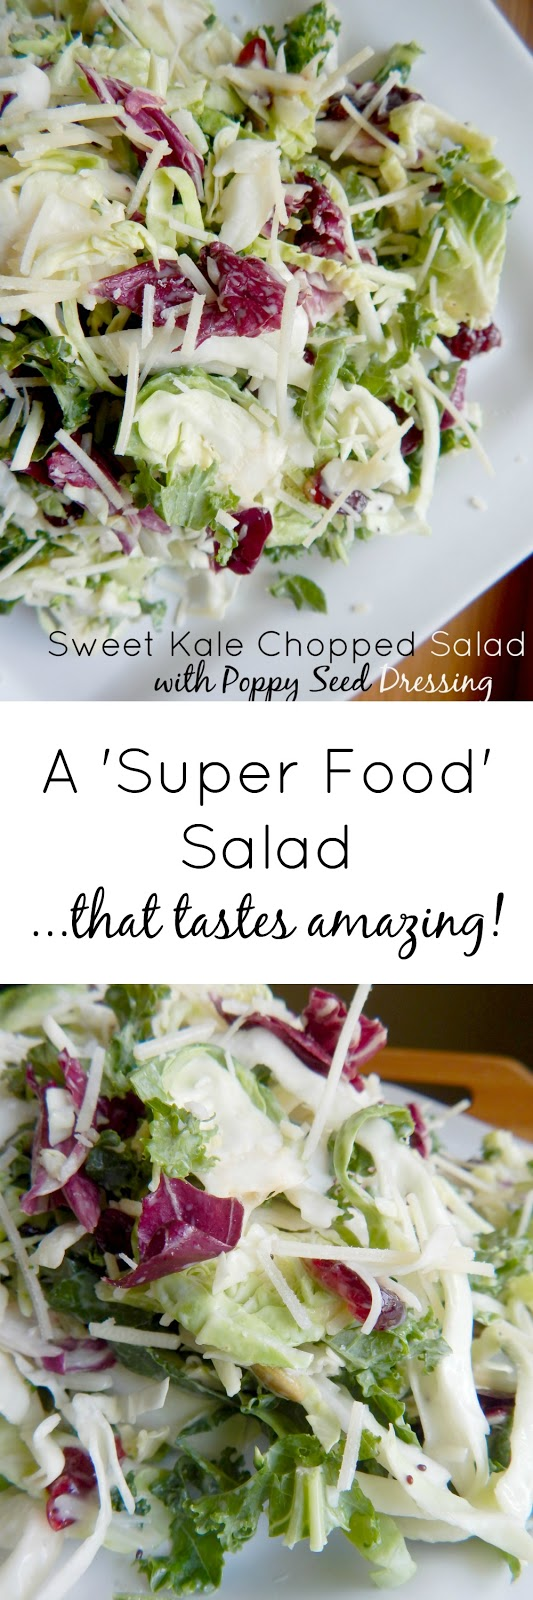 sweet kale chopped salad with poppy seed dressing (sweetandsavoryfood.com)